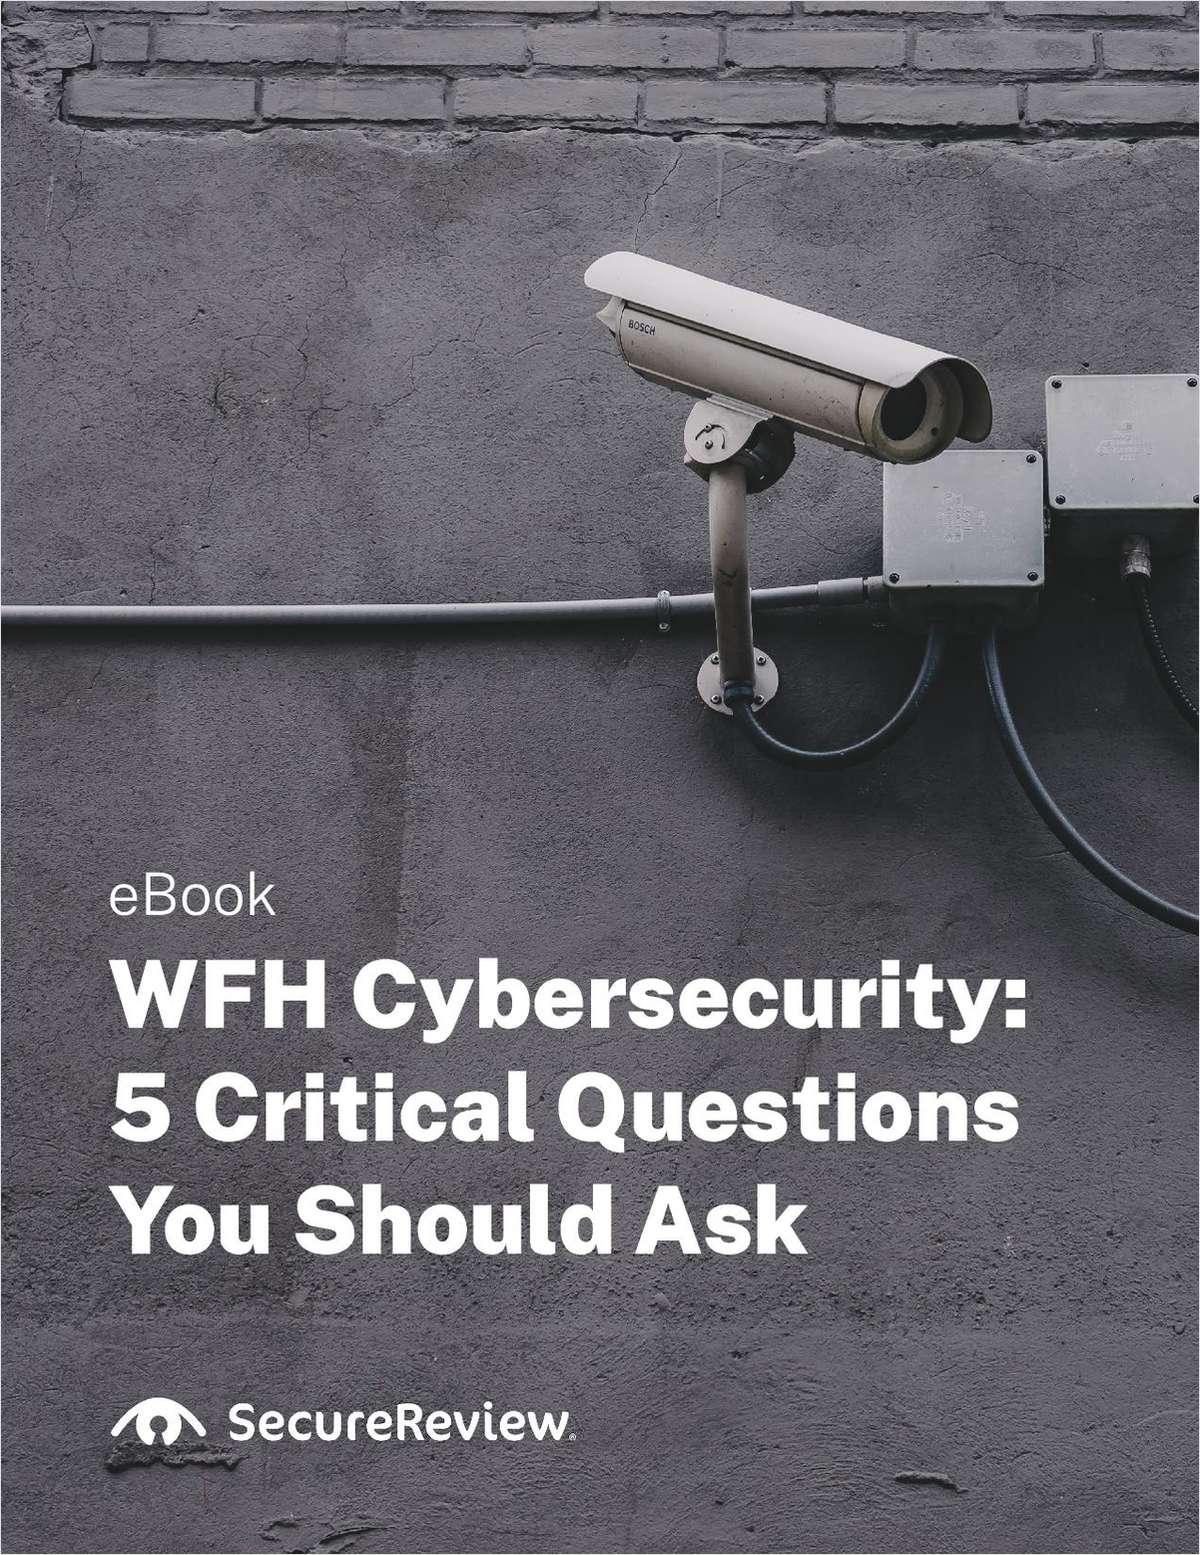 WFH Cybersecurity: 5 Critical Questions You Should Ask